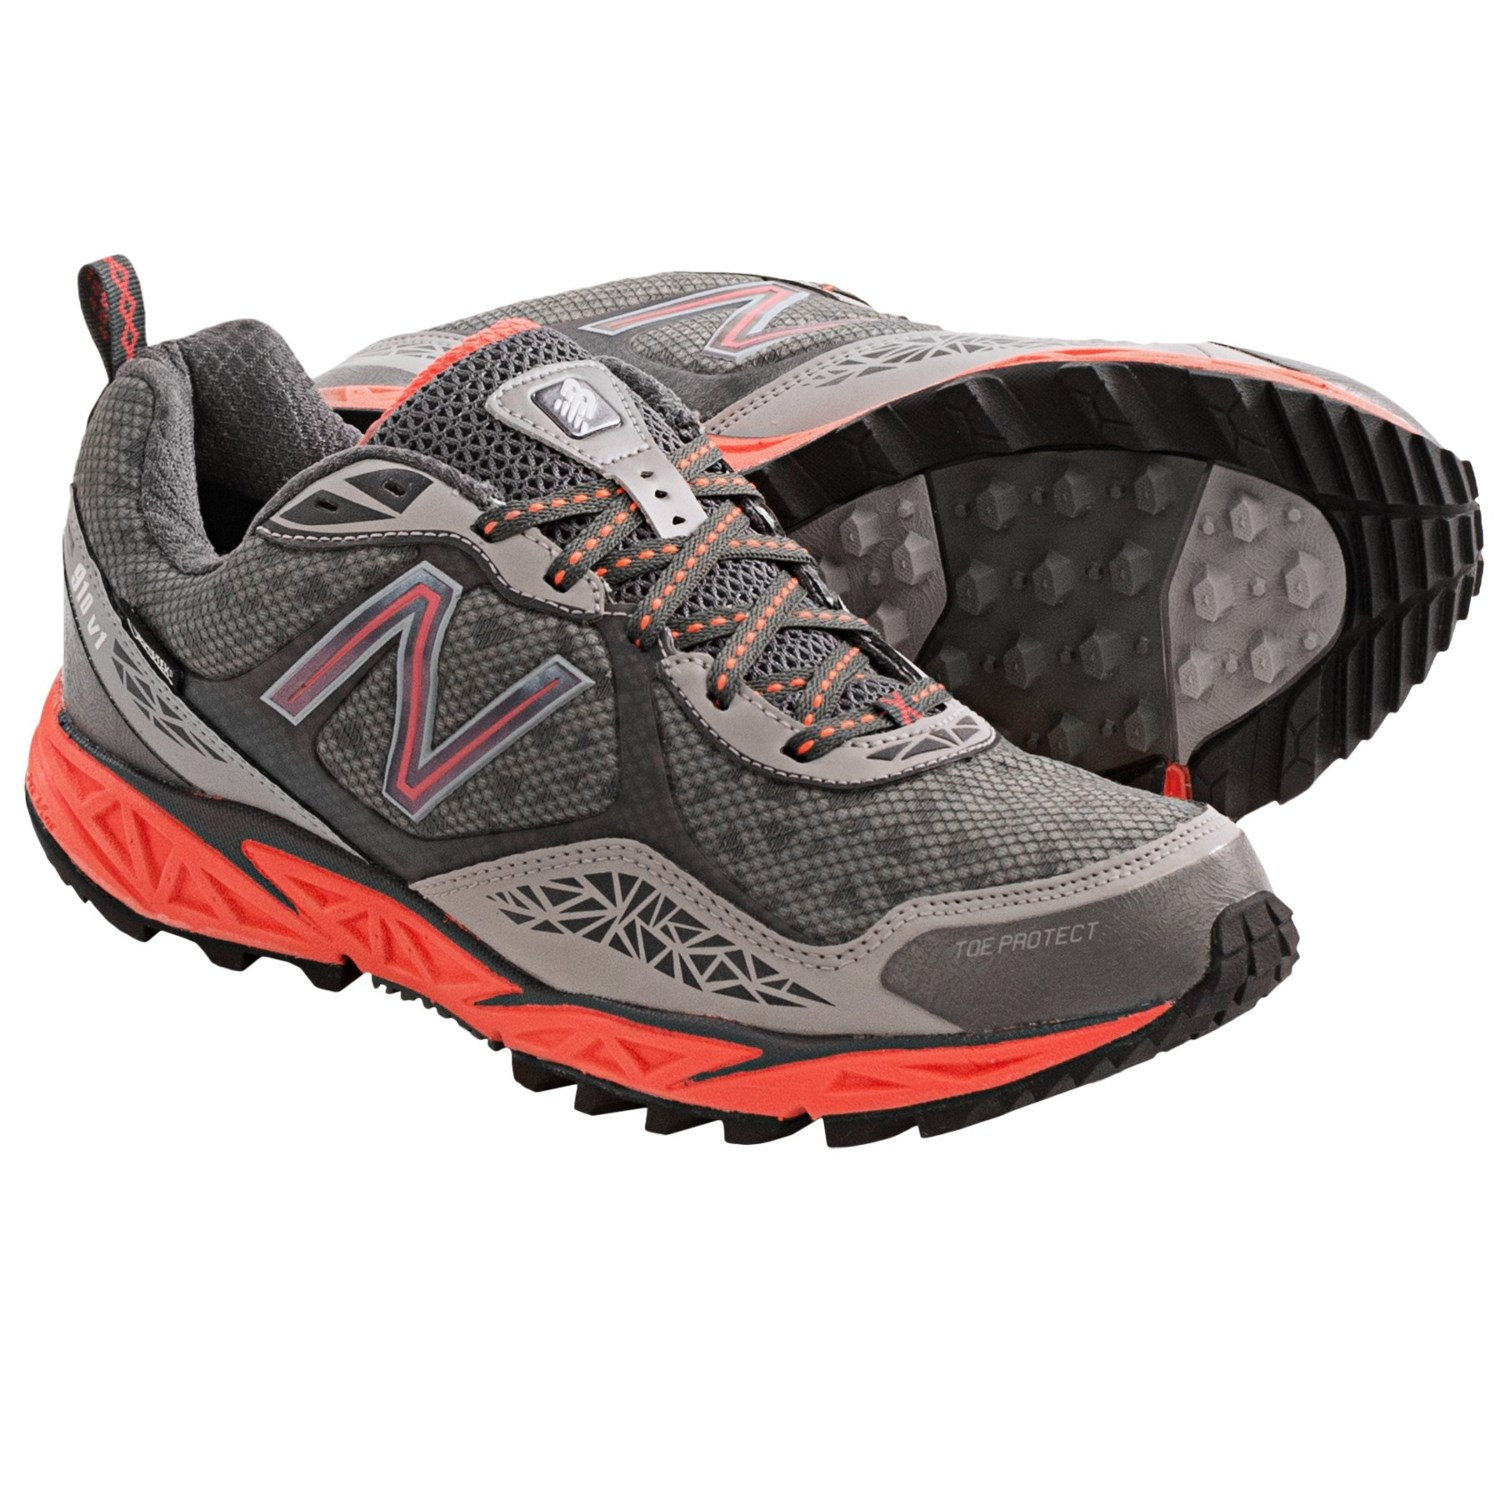 Best running shoes for women - Buying guide and reviews